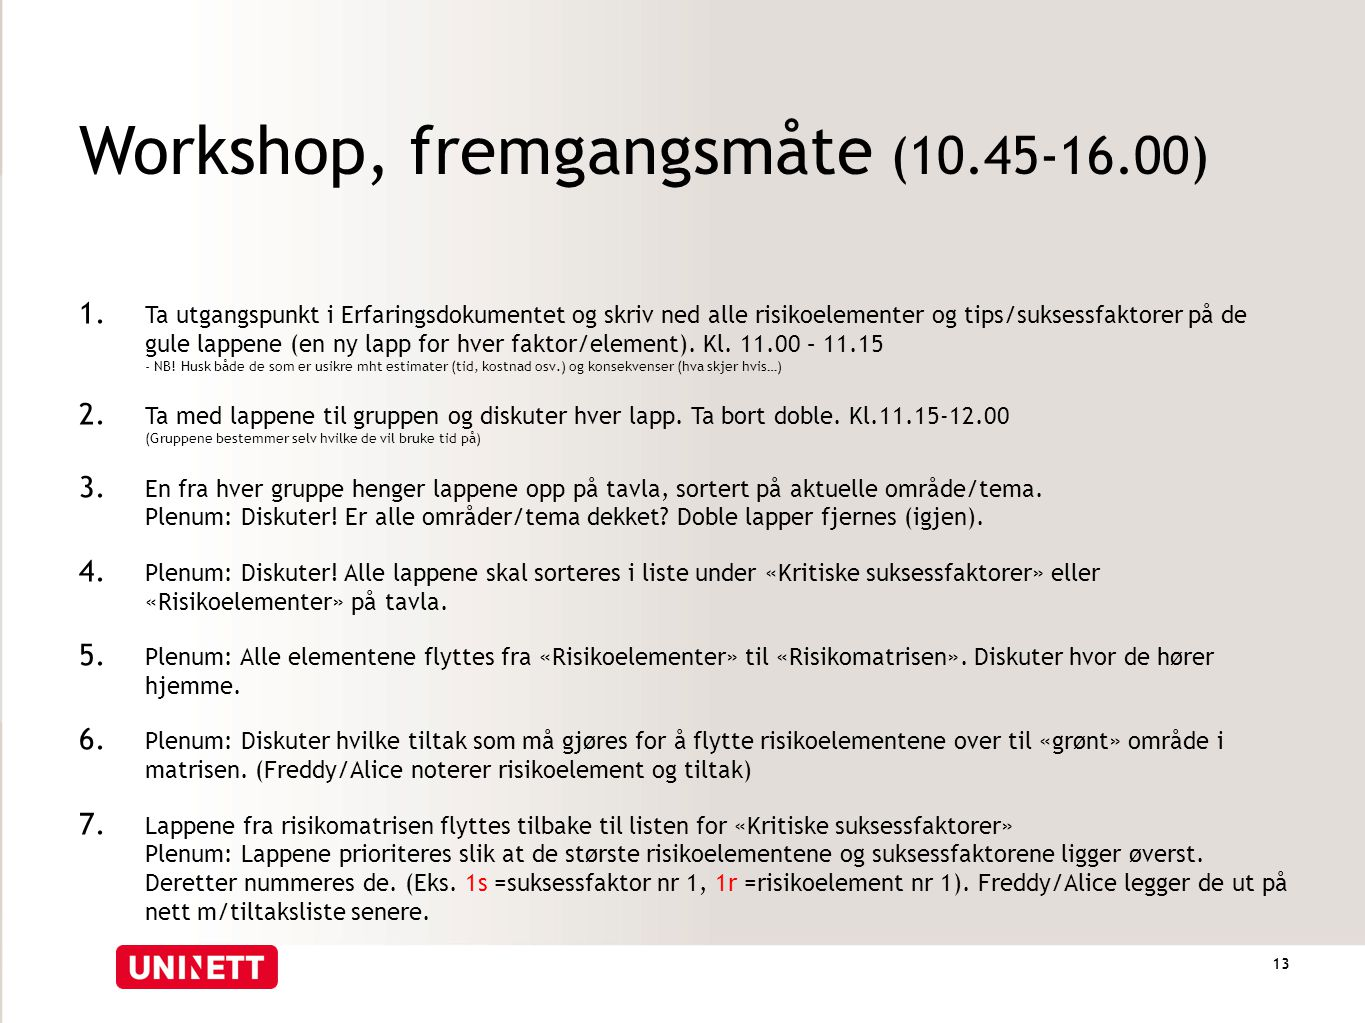 Workshop, fremgangsmåte (10.45-16.00)